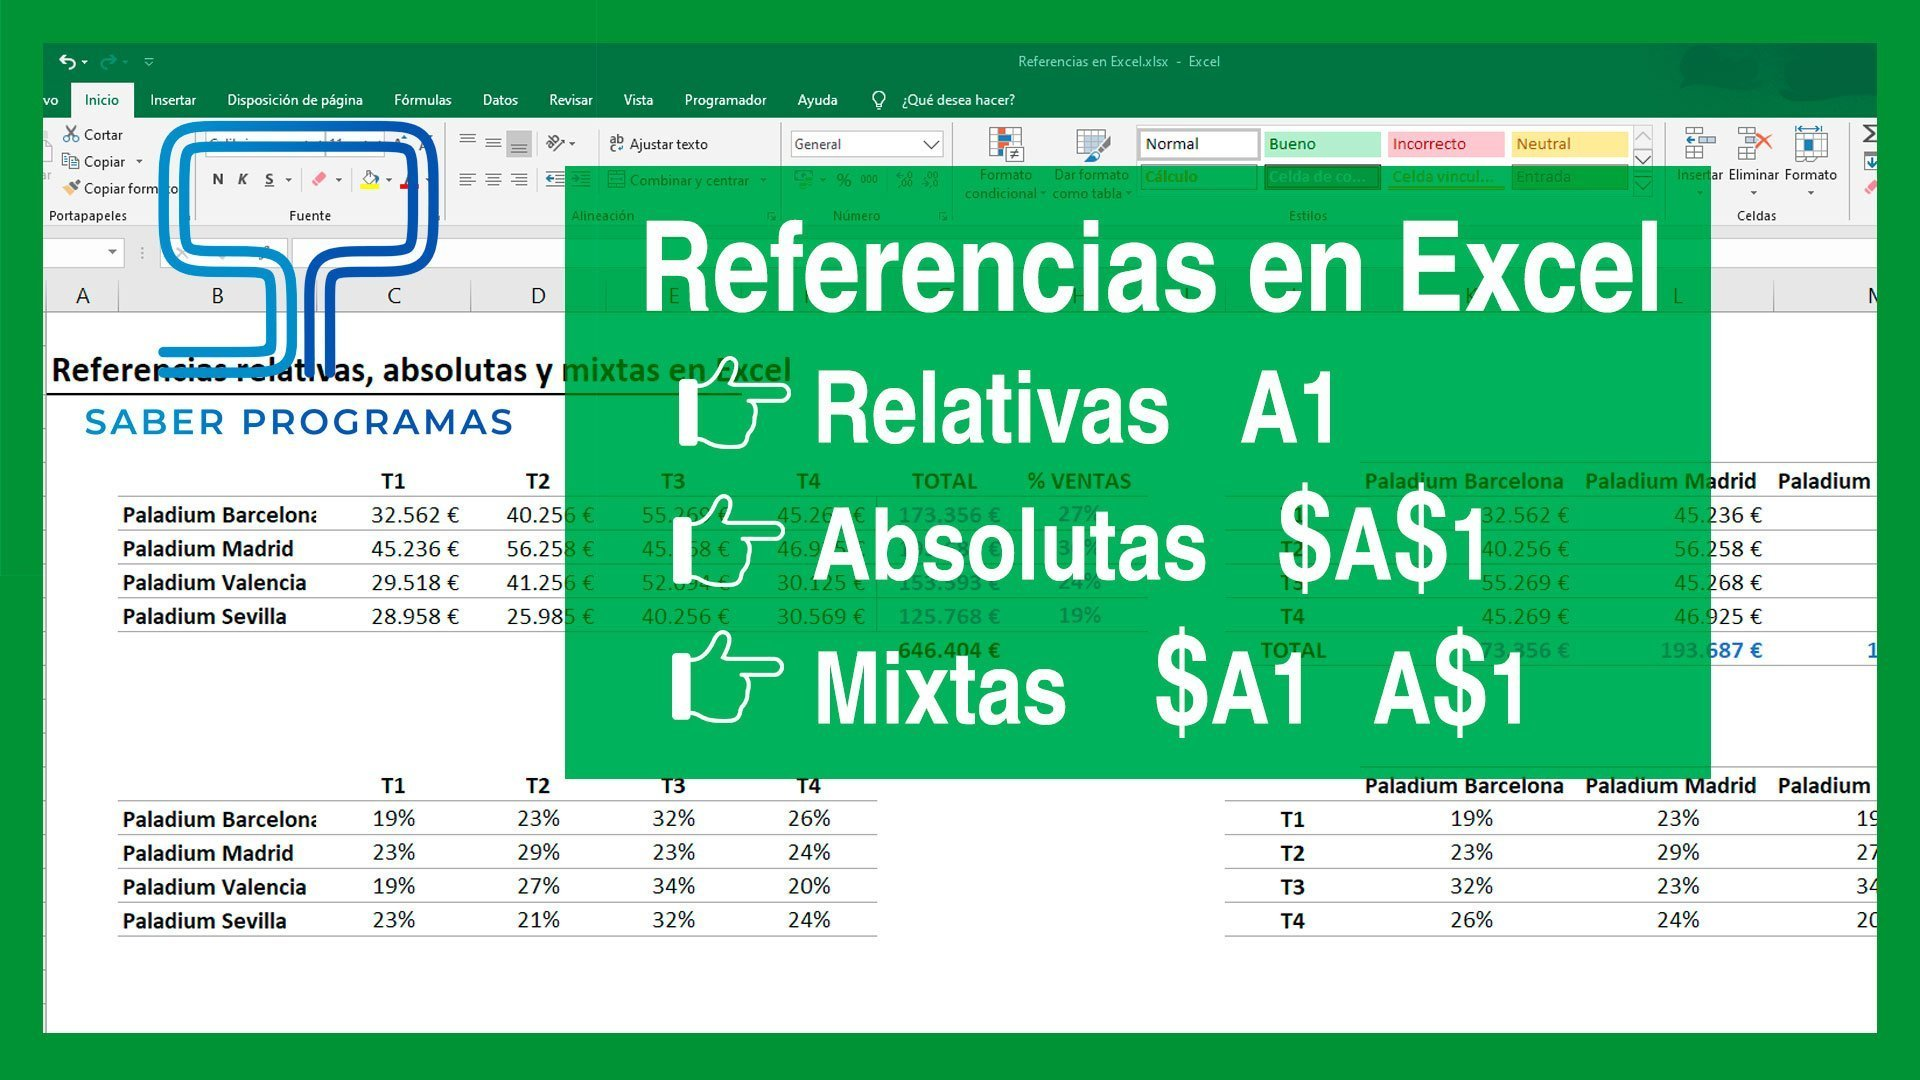 Referencias en Excel | Relativas, absolutas y mixtas